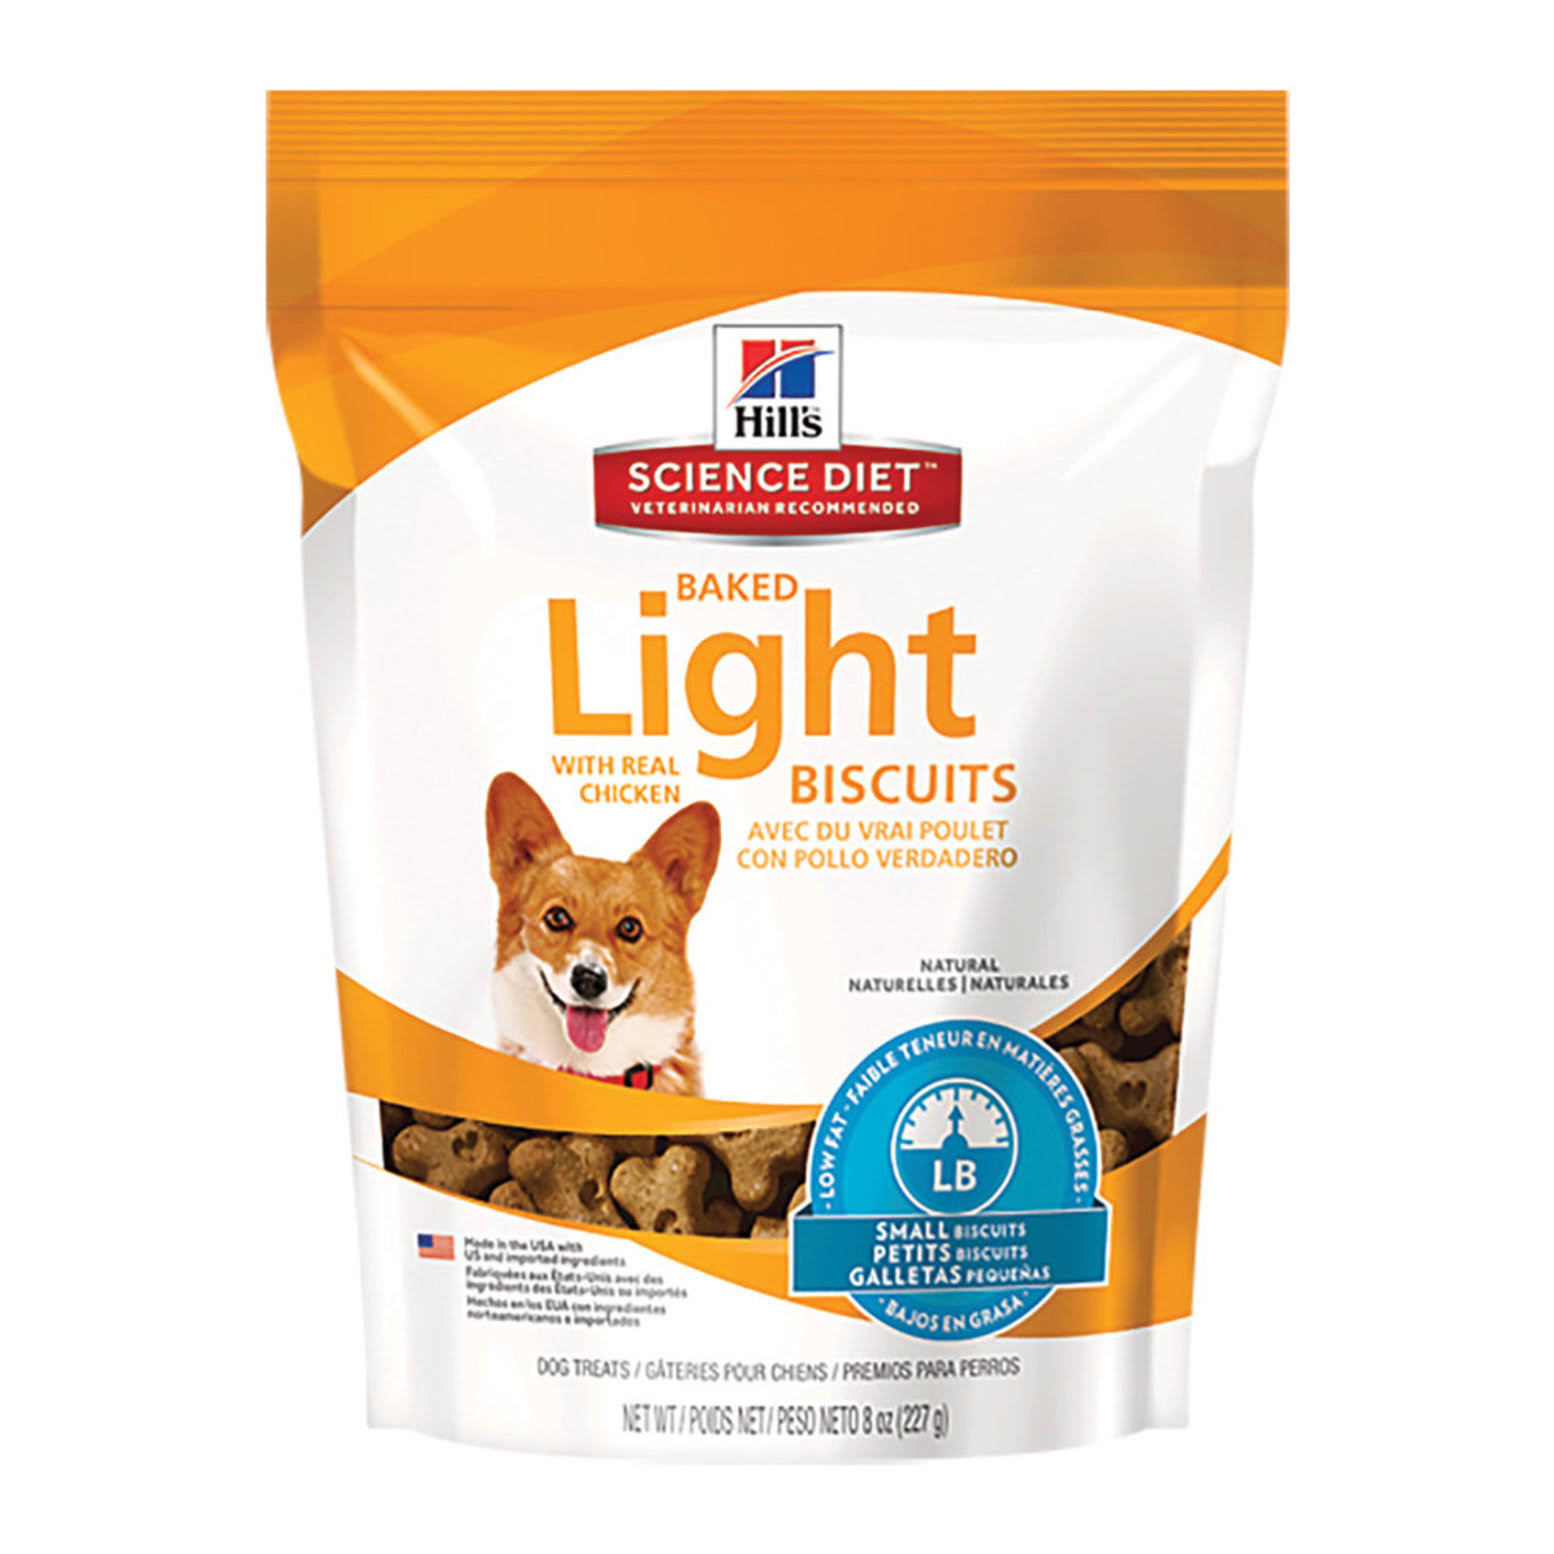 Hill's Science Diet Baked Light Biscuits with Real Chicken Dog Treats - 8oz